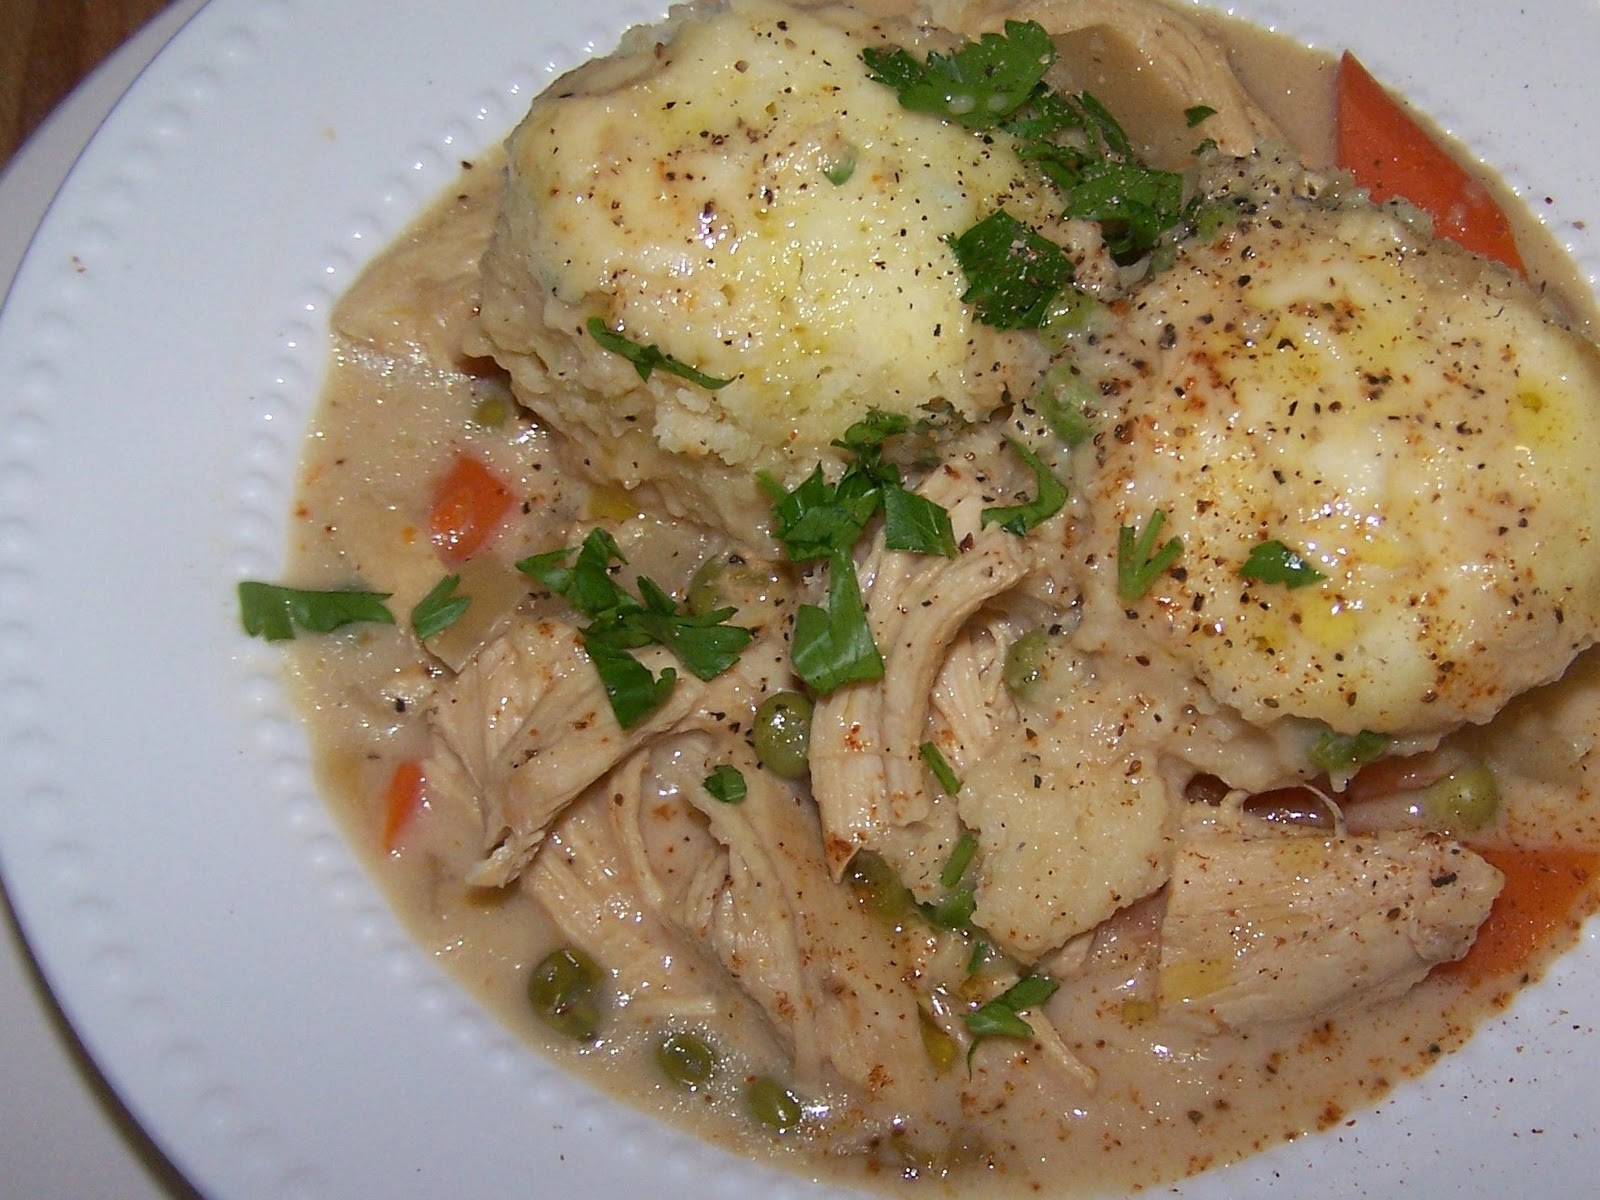 EZ Gluten Free: Chicken and Dumplings - Gluten Free Crock Pot Recipe